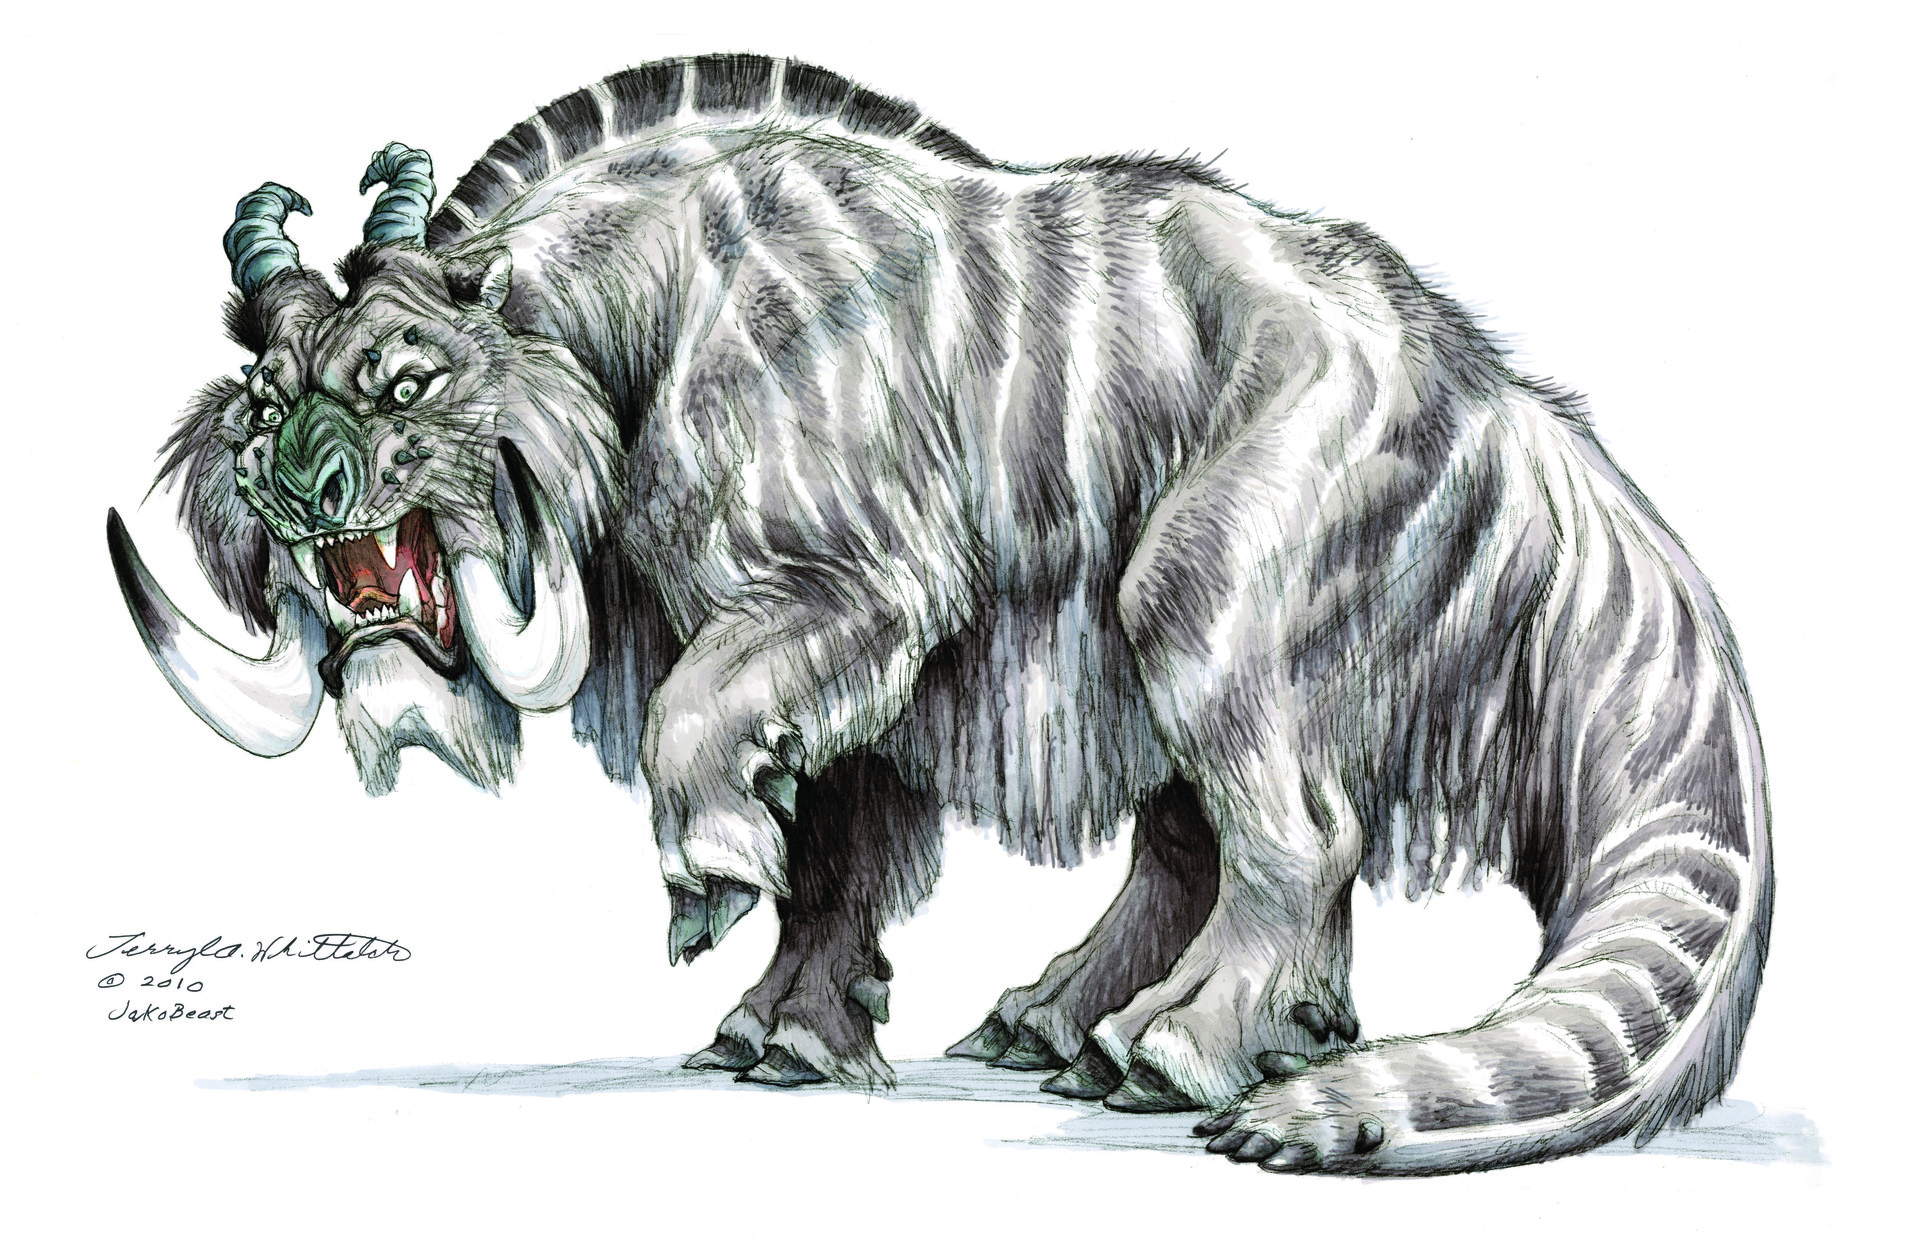 Jakobeast: concept art and creature design for the Star Wars universe.